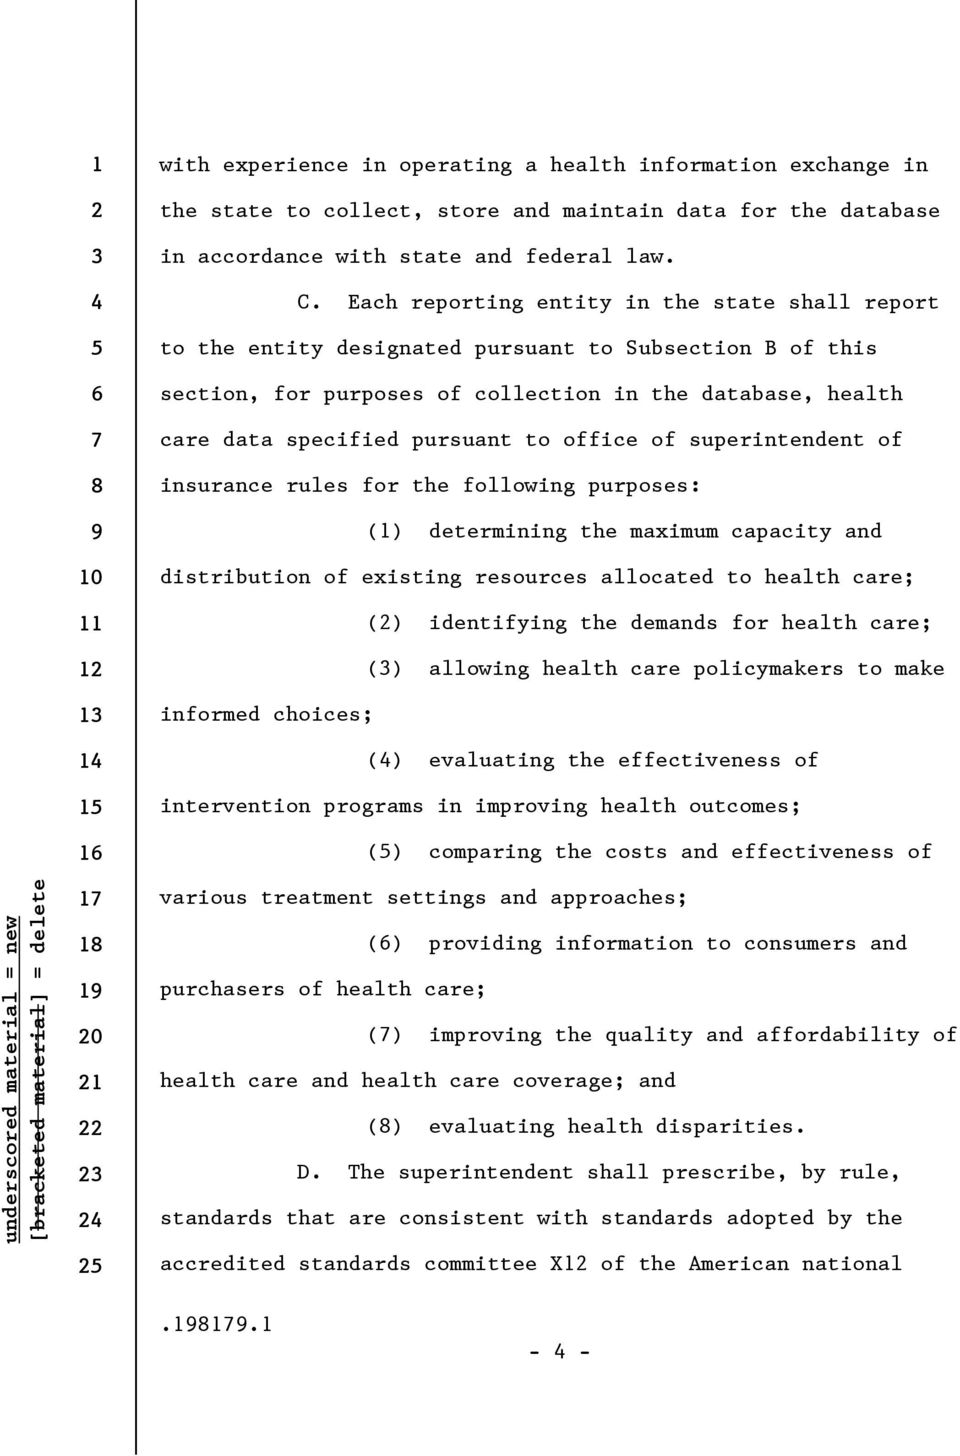 office of superintendent of insurance rules for the following purposes: (1) determining the maximum capacity and distribution of existing resources allocated to health care; () identifying the